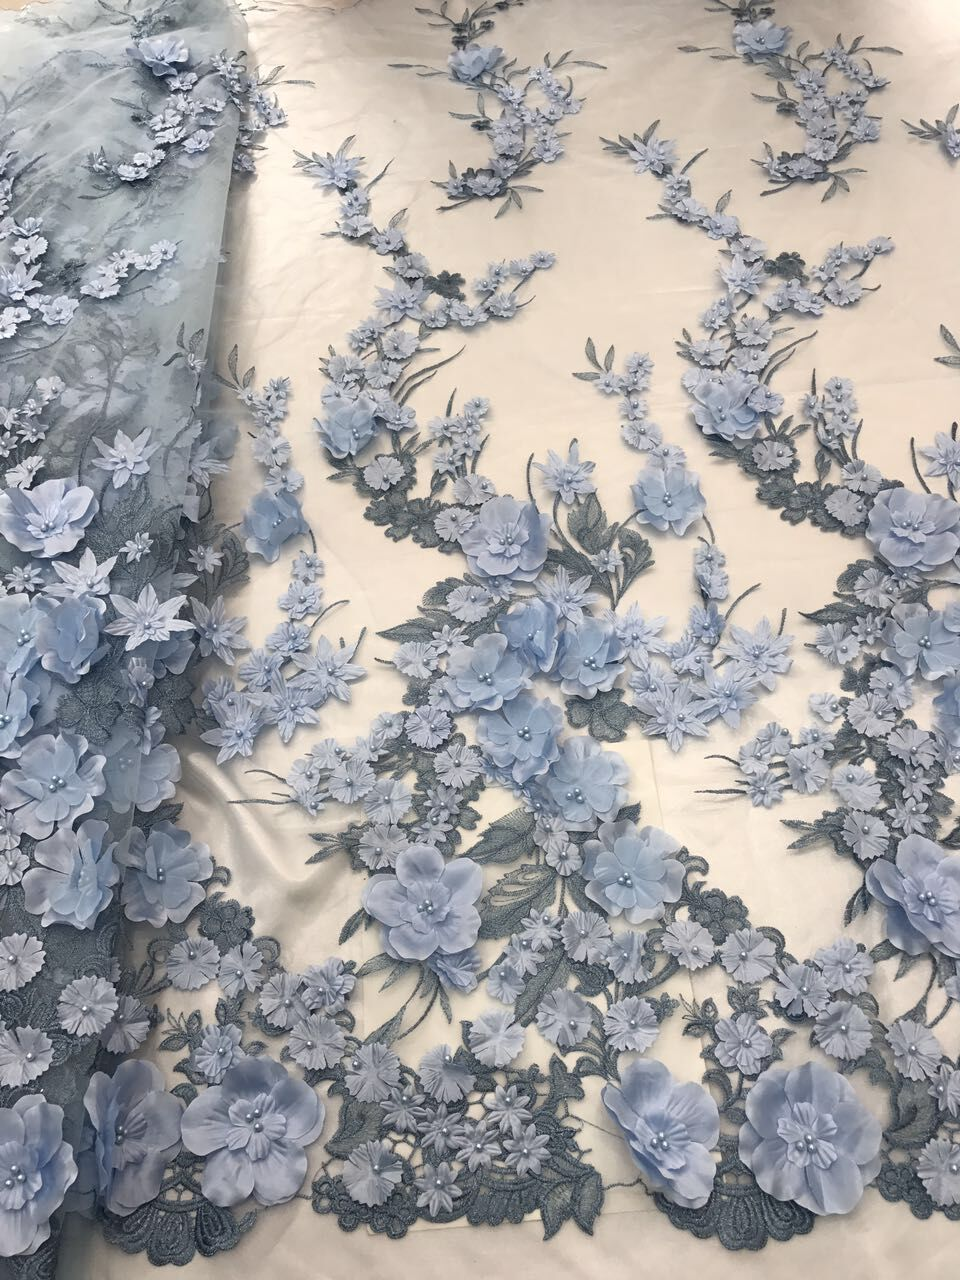 3d flower african french lace fabric with beads 5yards LJY 41818 1 african tulle lace fabric